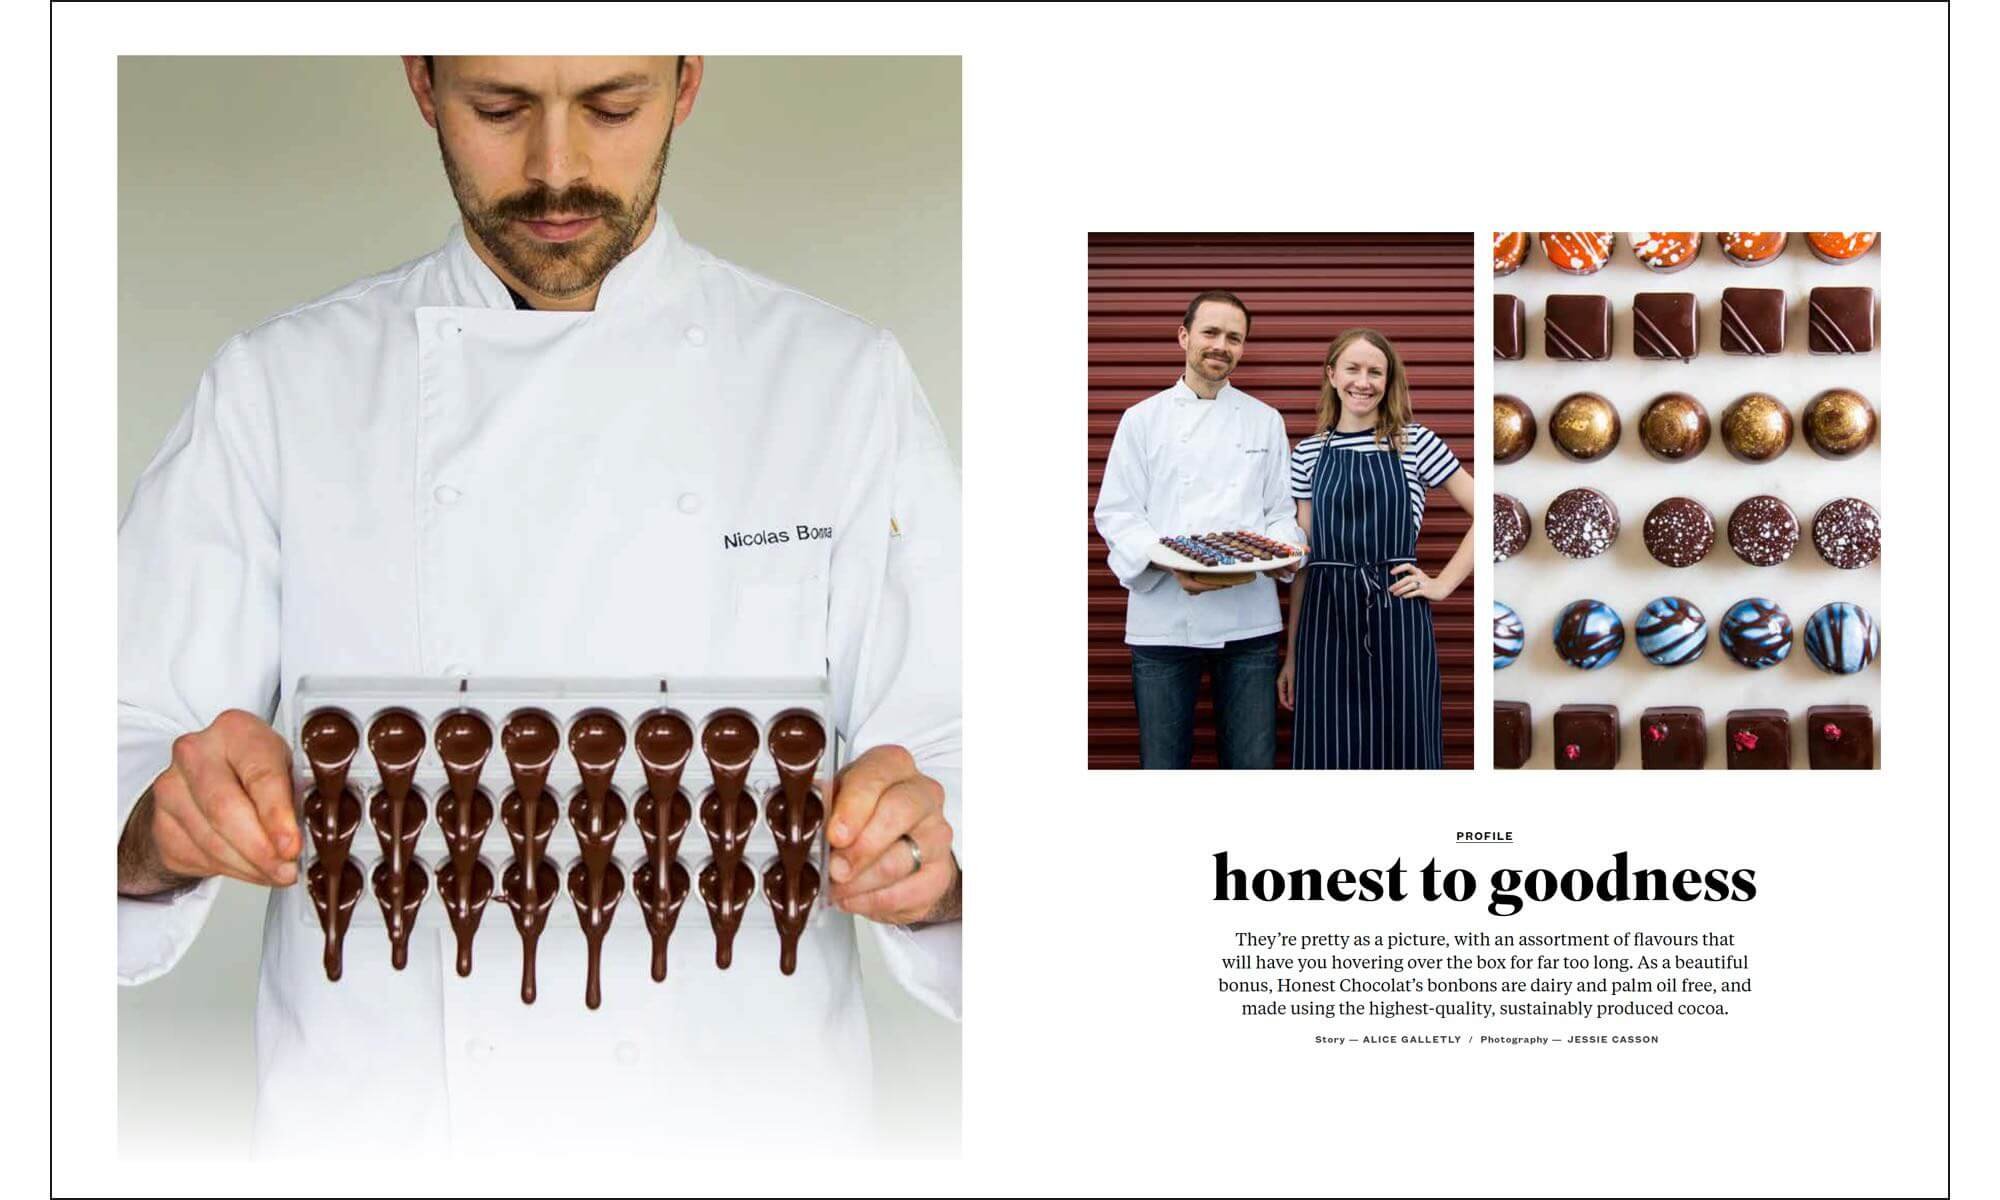 Article about Honest Chocolat